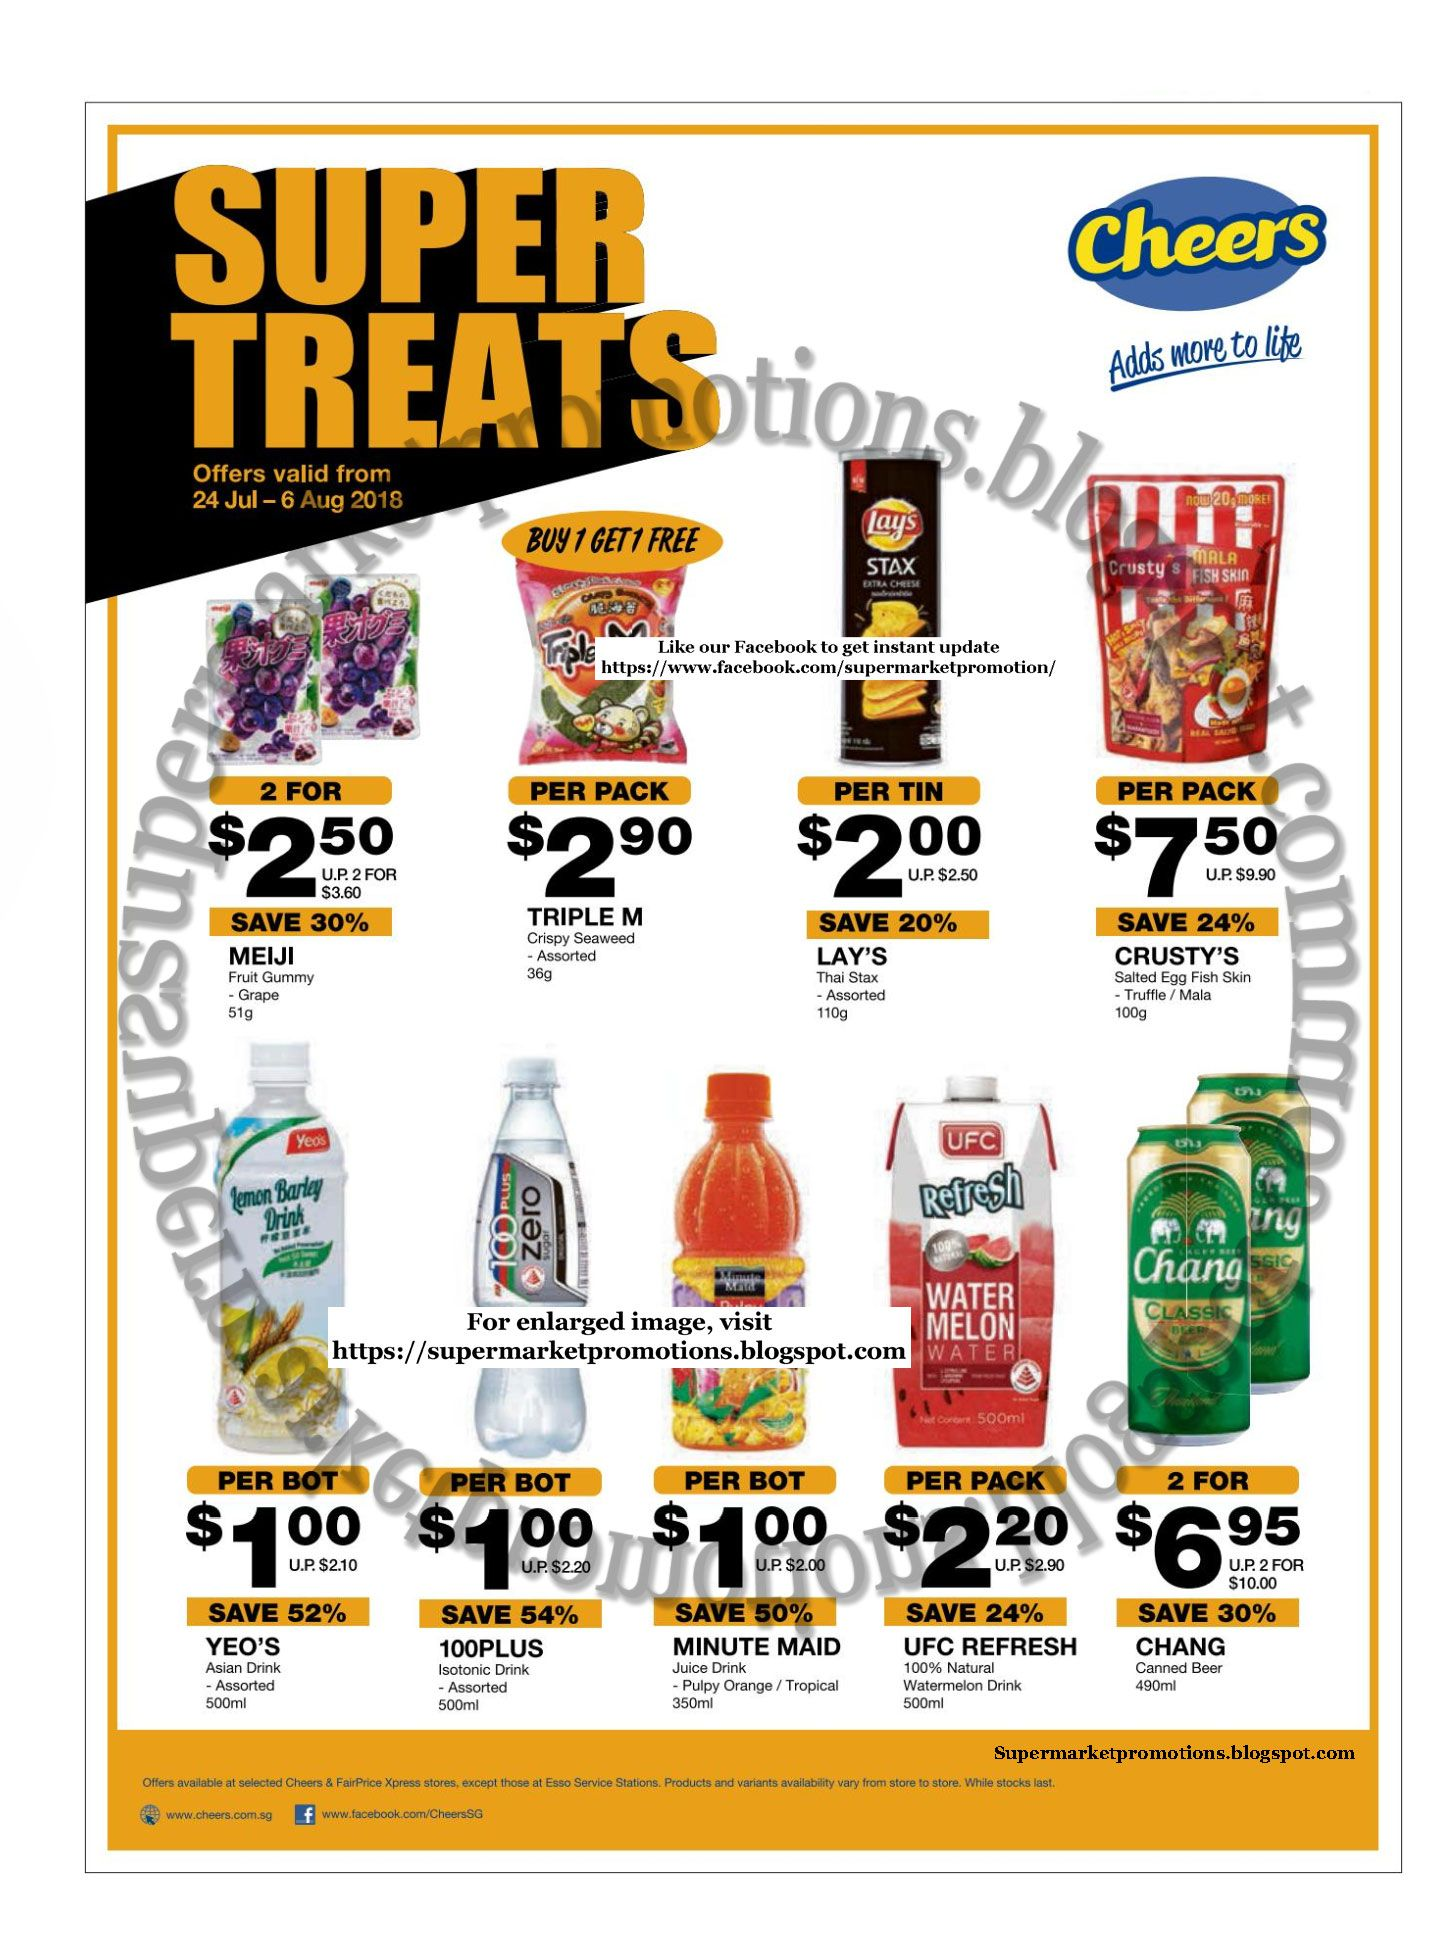 Pin by Reb Venus on Supermarket Promotions | Cheer treats